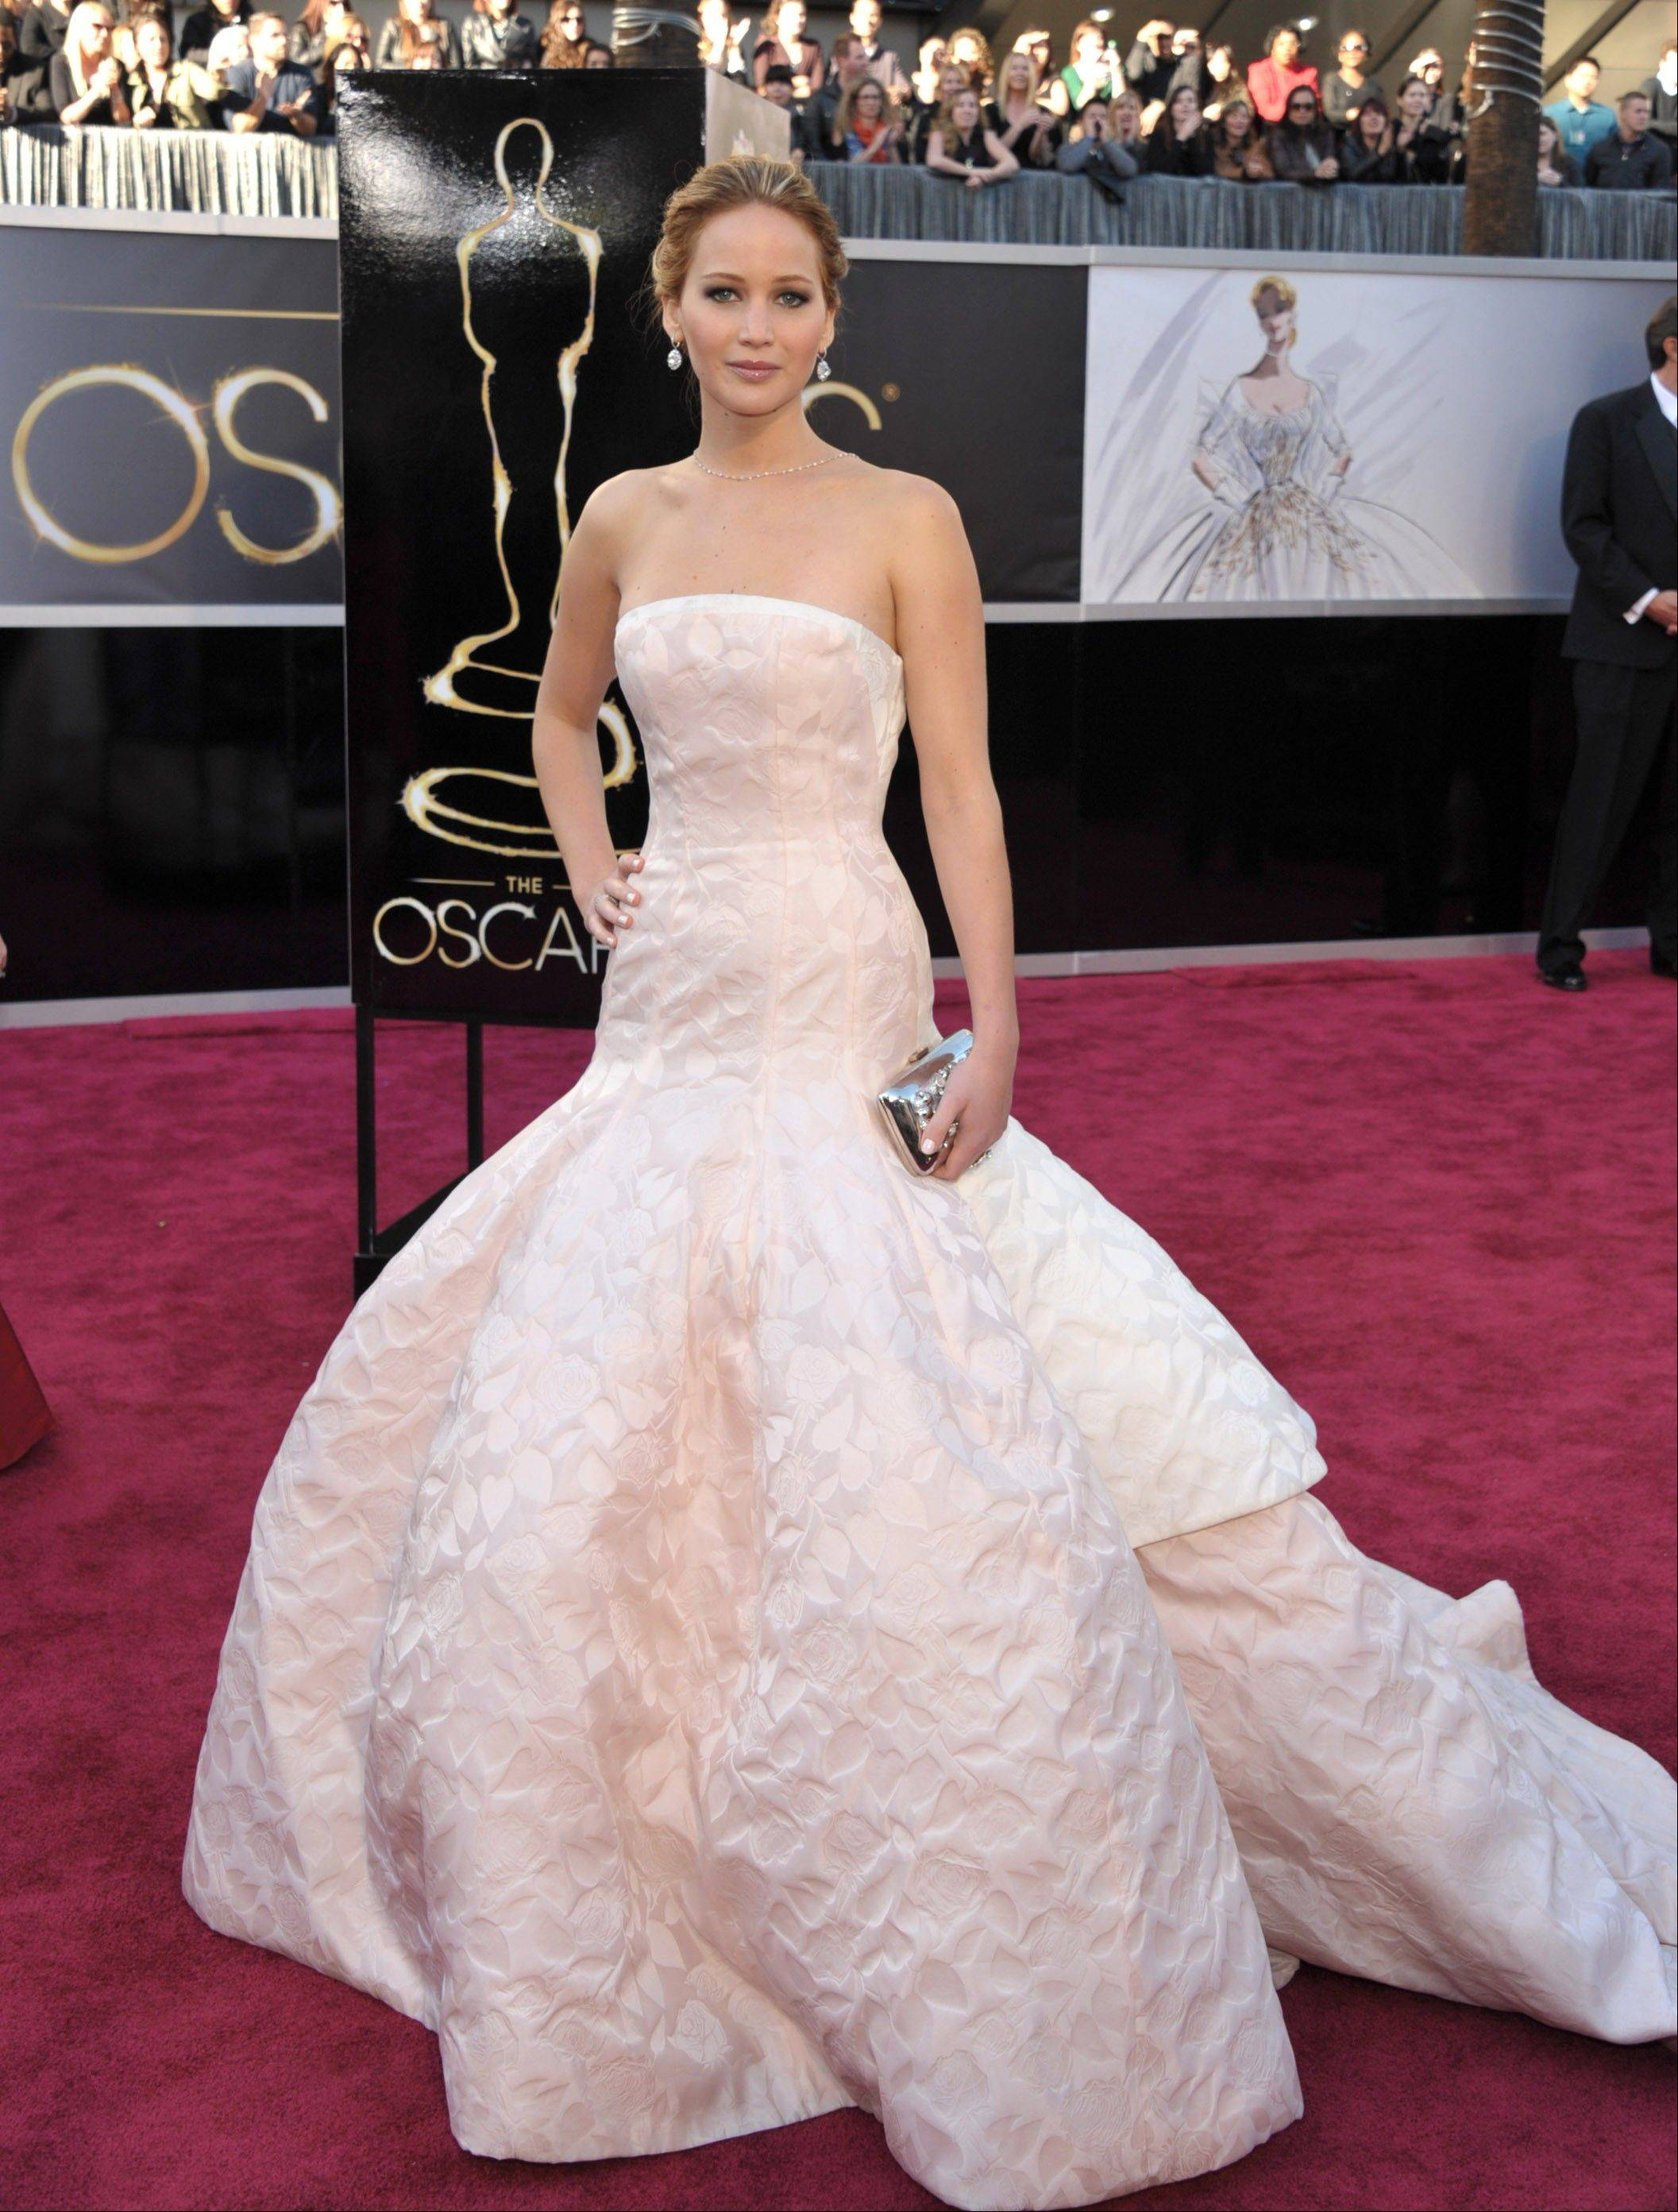 Actress Jennifer Lawrence arrives at the Oscars at the Dolby Theatre on Sunday in Los Angeles.